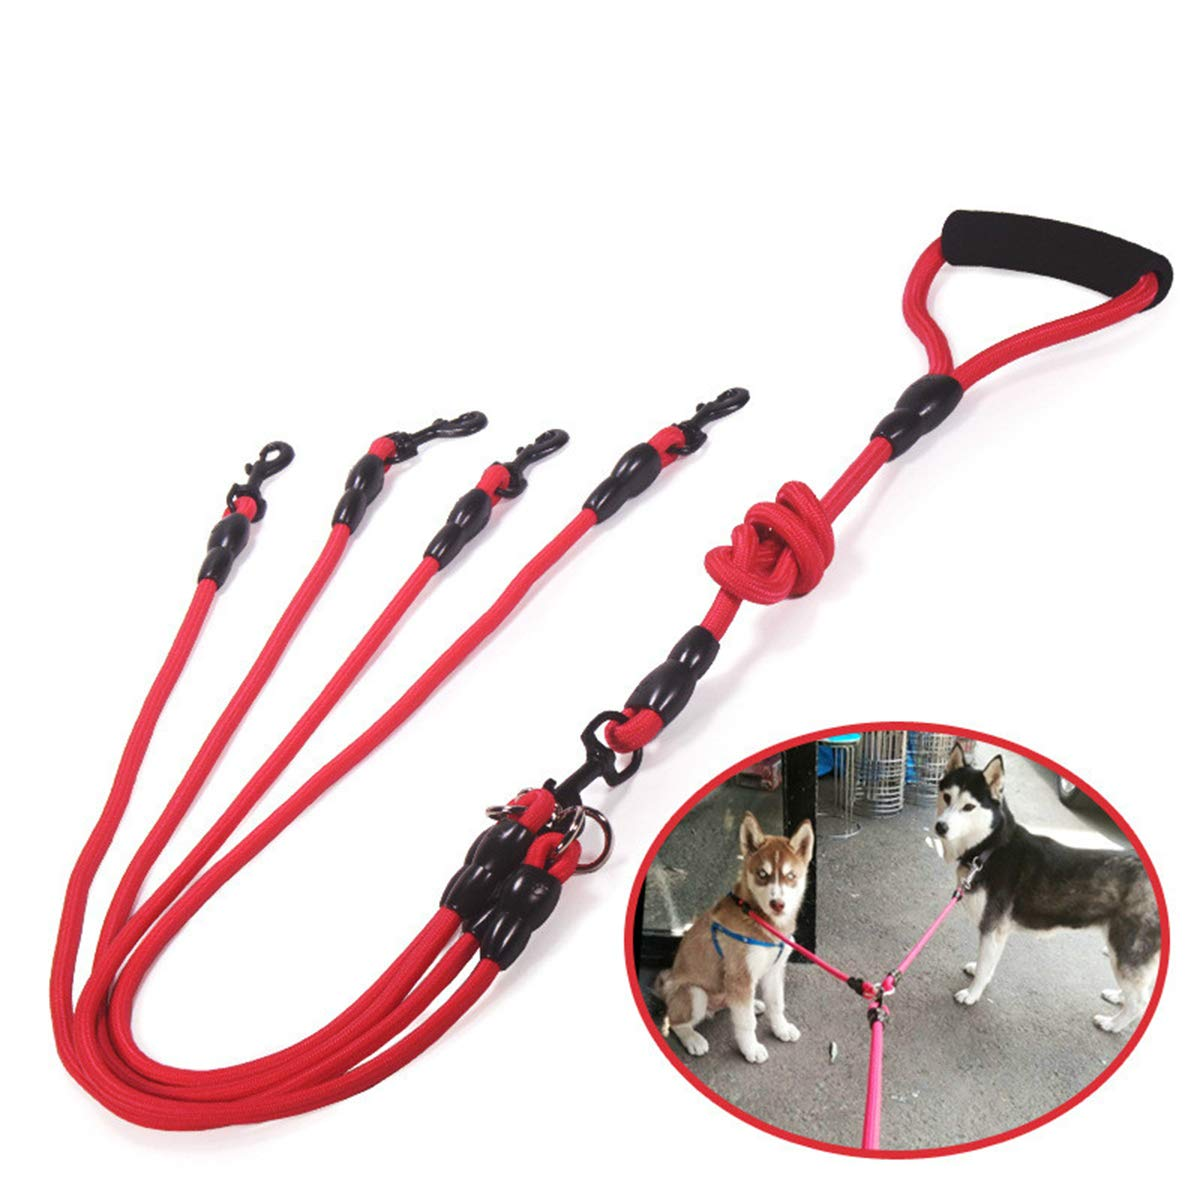 Black four dog leash Black four dog leash PETFDH Nylon Two Three Four Dogs Leash Detachable Pet Lead Climbing Foam Handle 1 Leash for 2 Or 3 Or 4 Dogs Small Dog Traction Rope Black Four Dog Leash